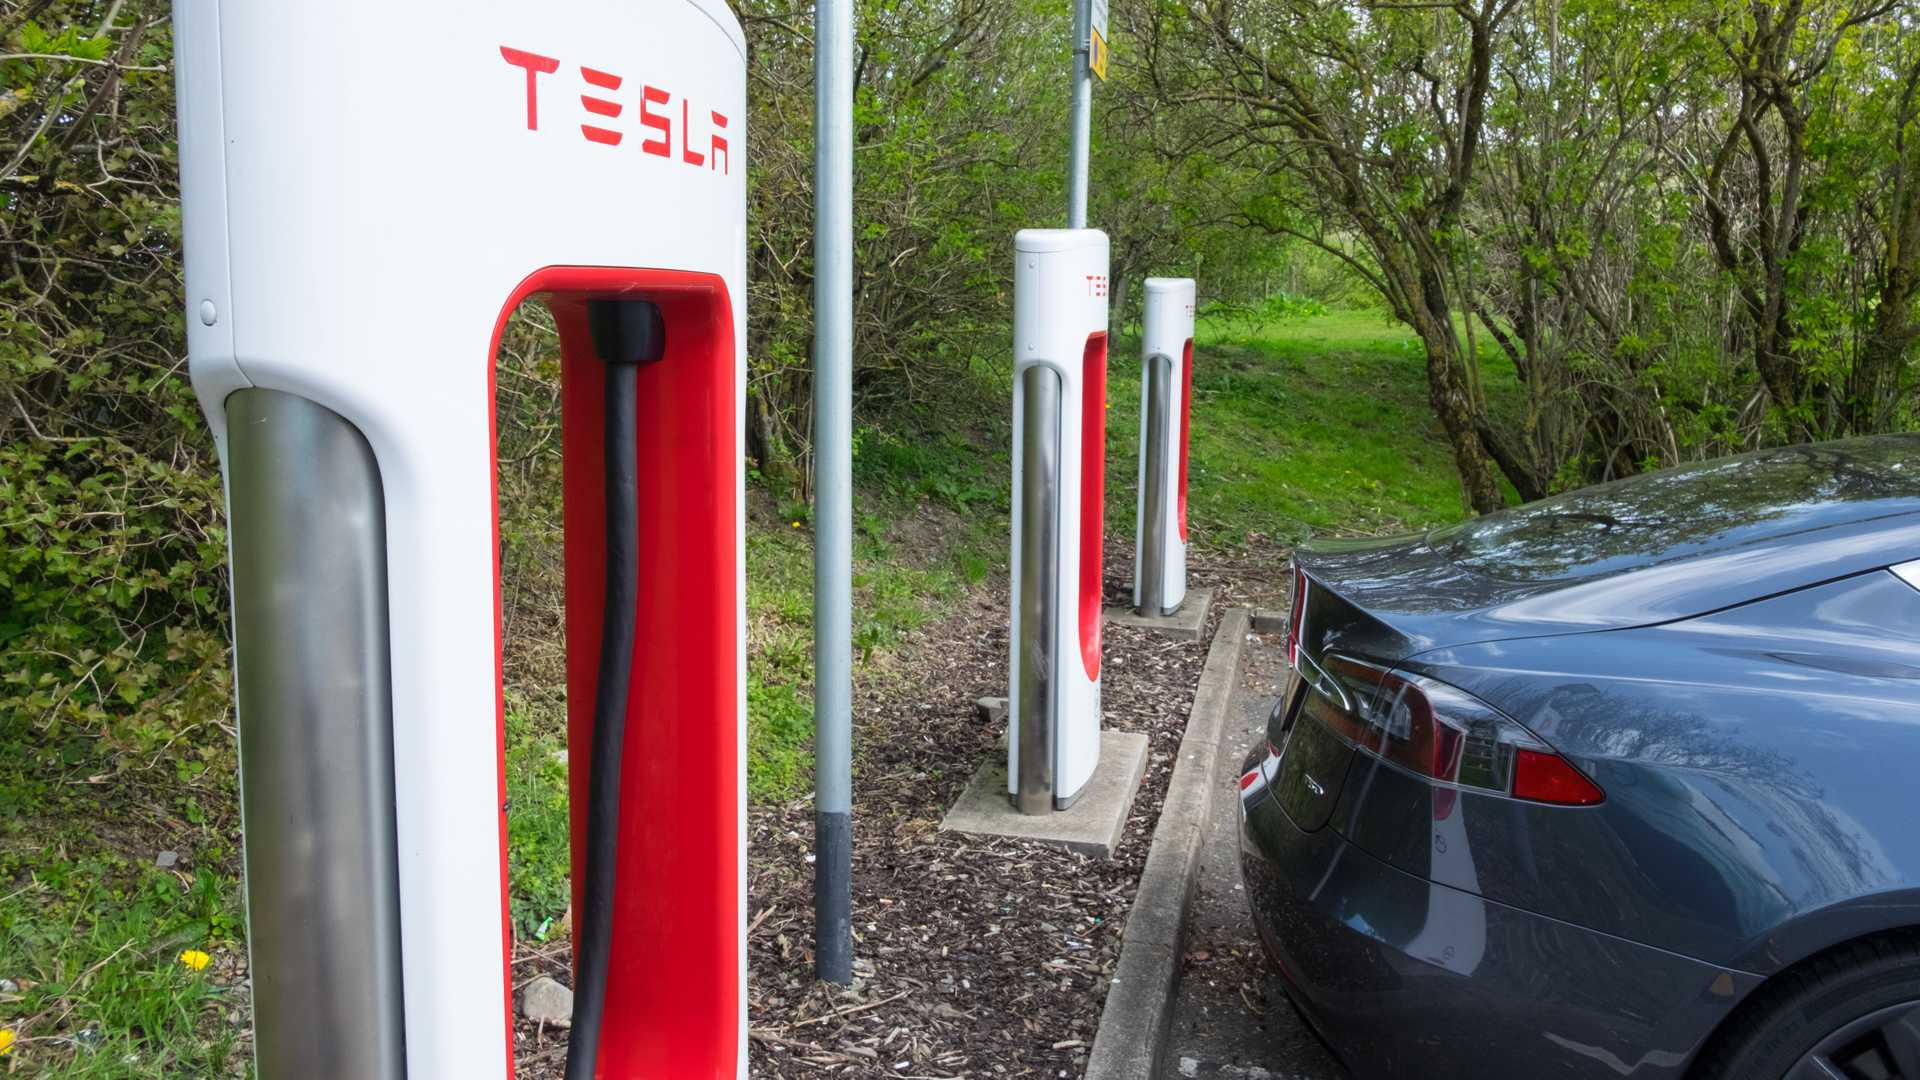 Electric Vehicle Charging Infrastructure Is Finally Starting To Add Up